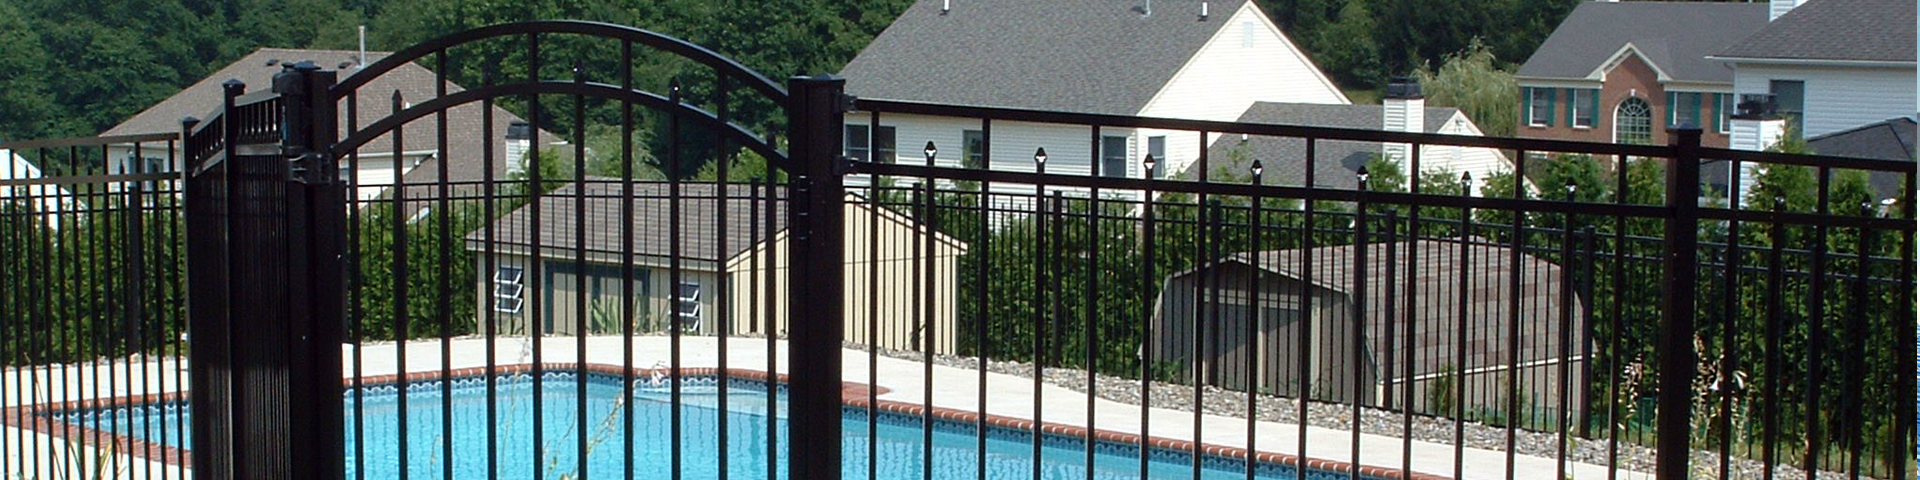 Inground Pool Fence